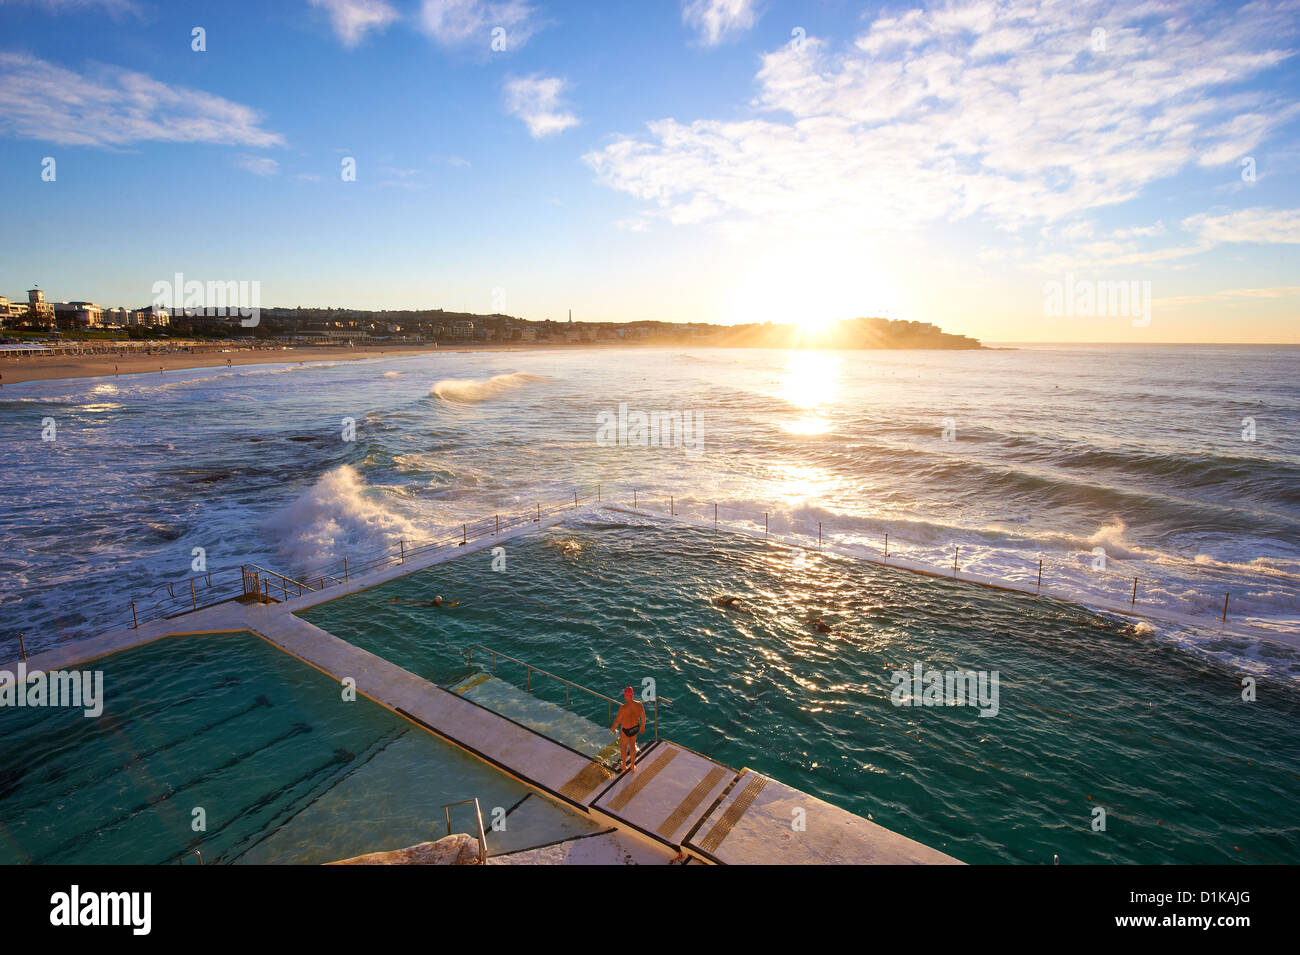 Bondi icebergs, Sydney, New South Wales AustraliaFoto de stock